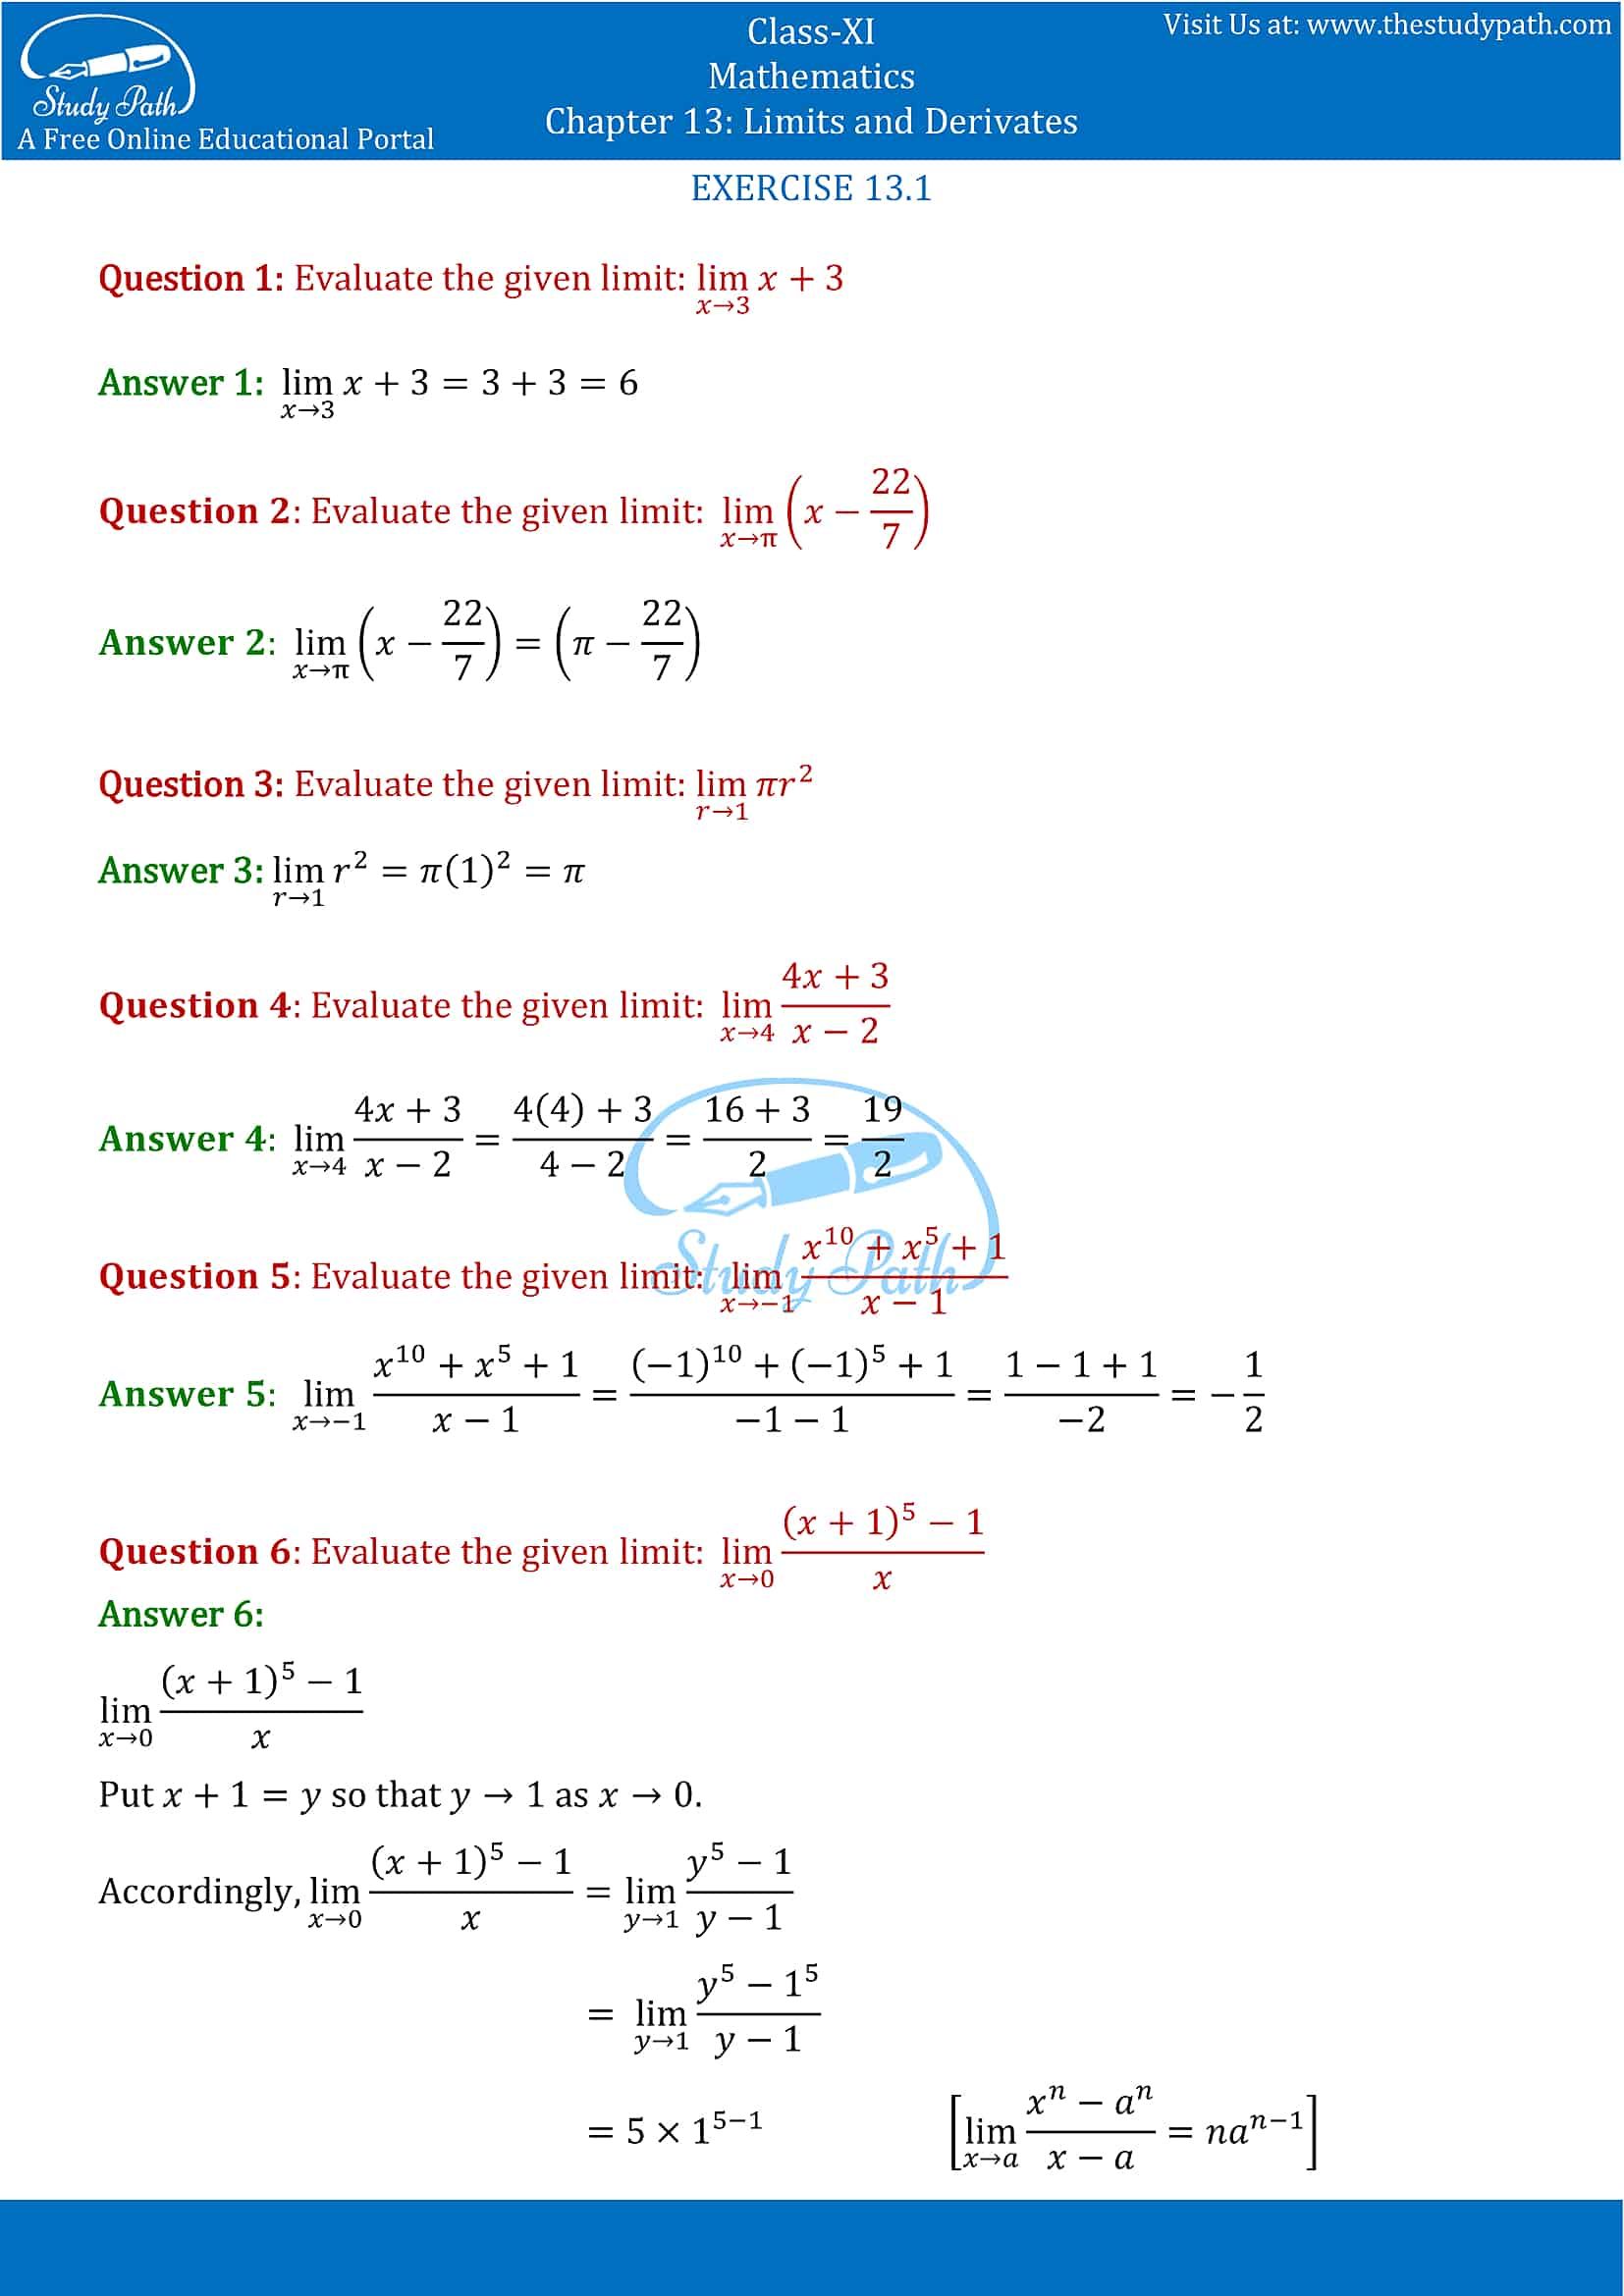 NCERT Solutions for Class 11 Maths chapter 13 Limits and Derivatives Exercise 13.1 Part-1